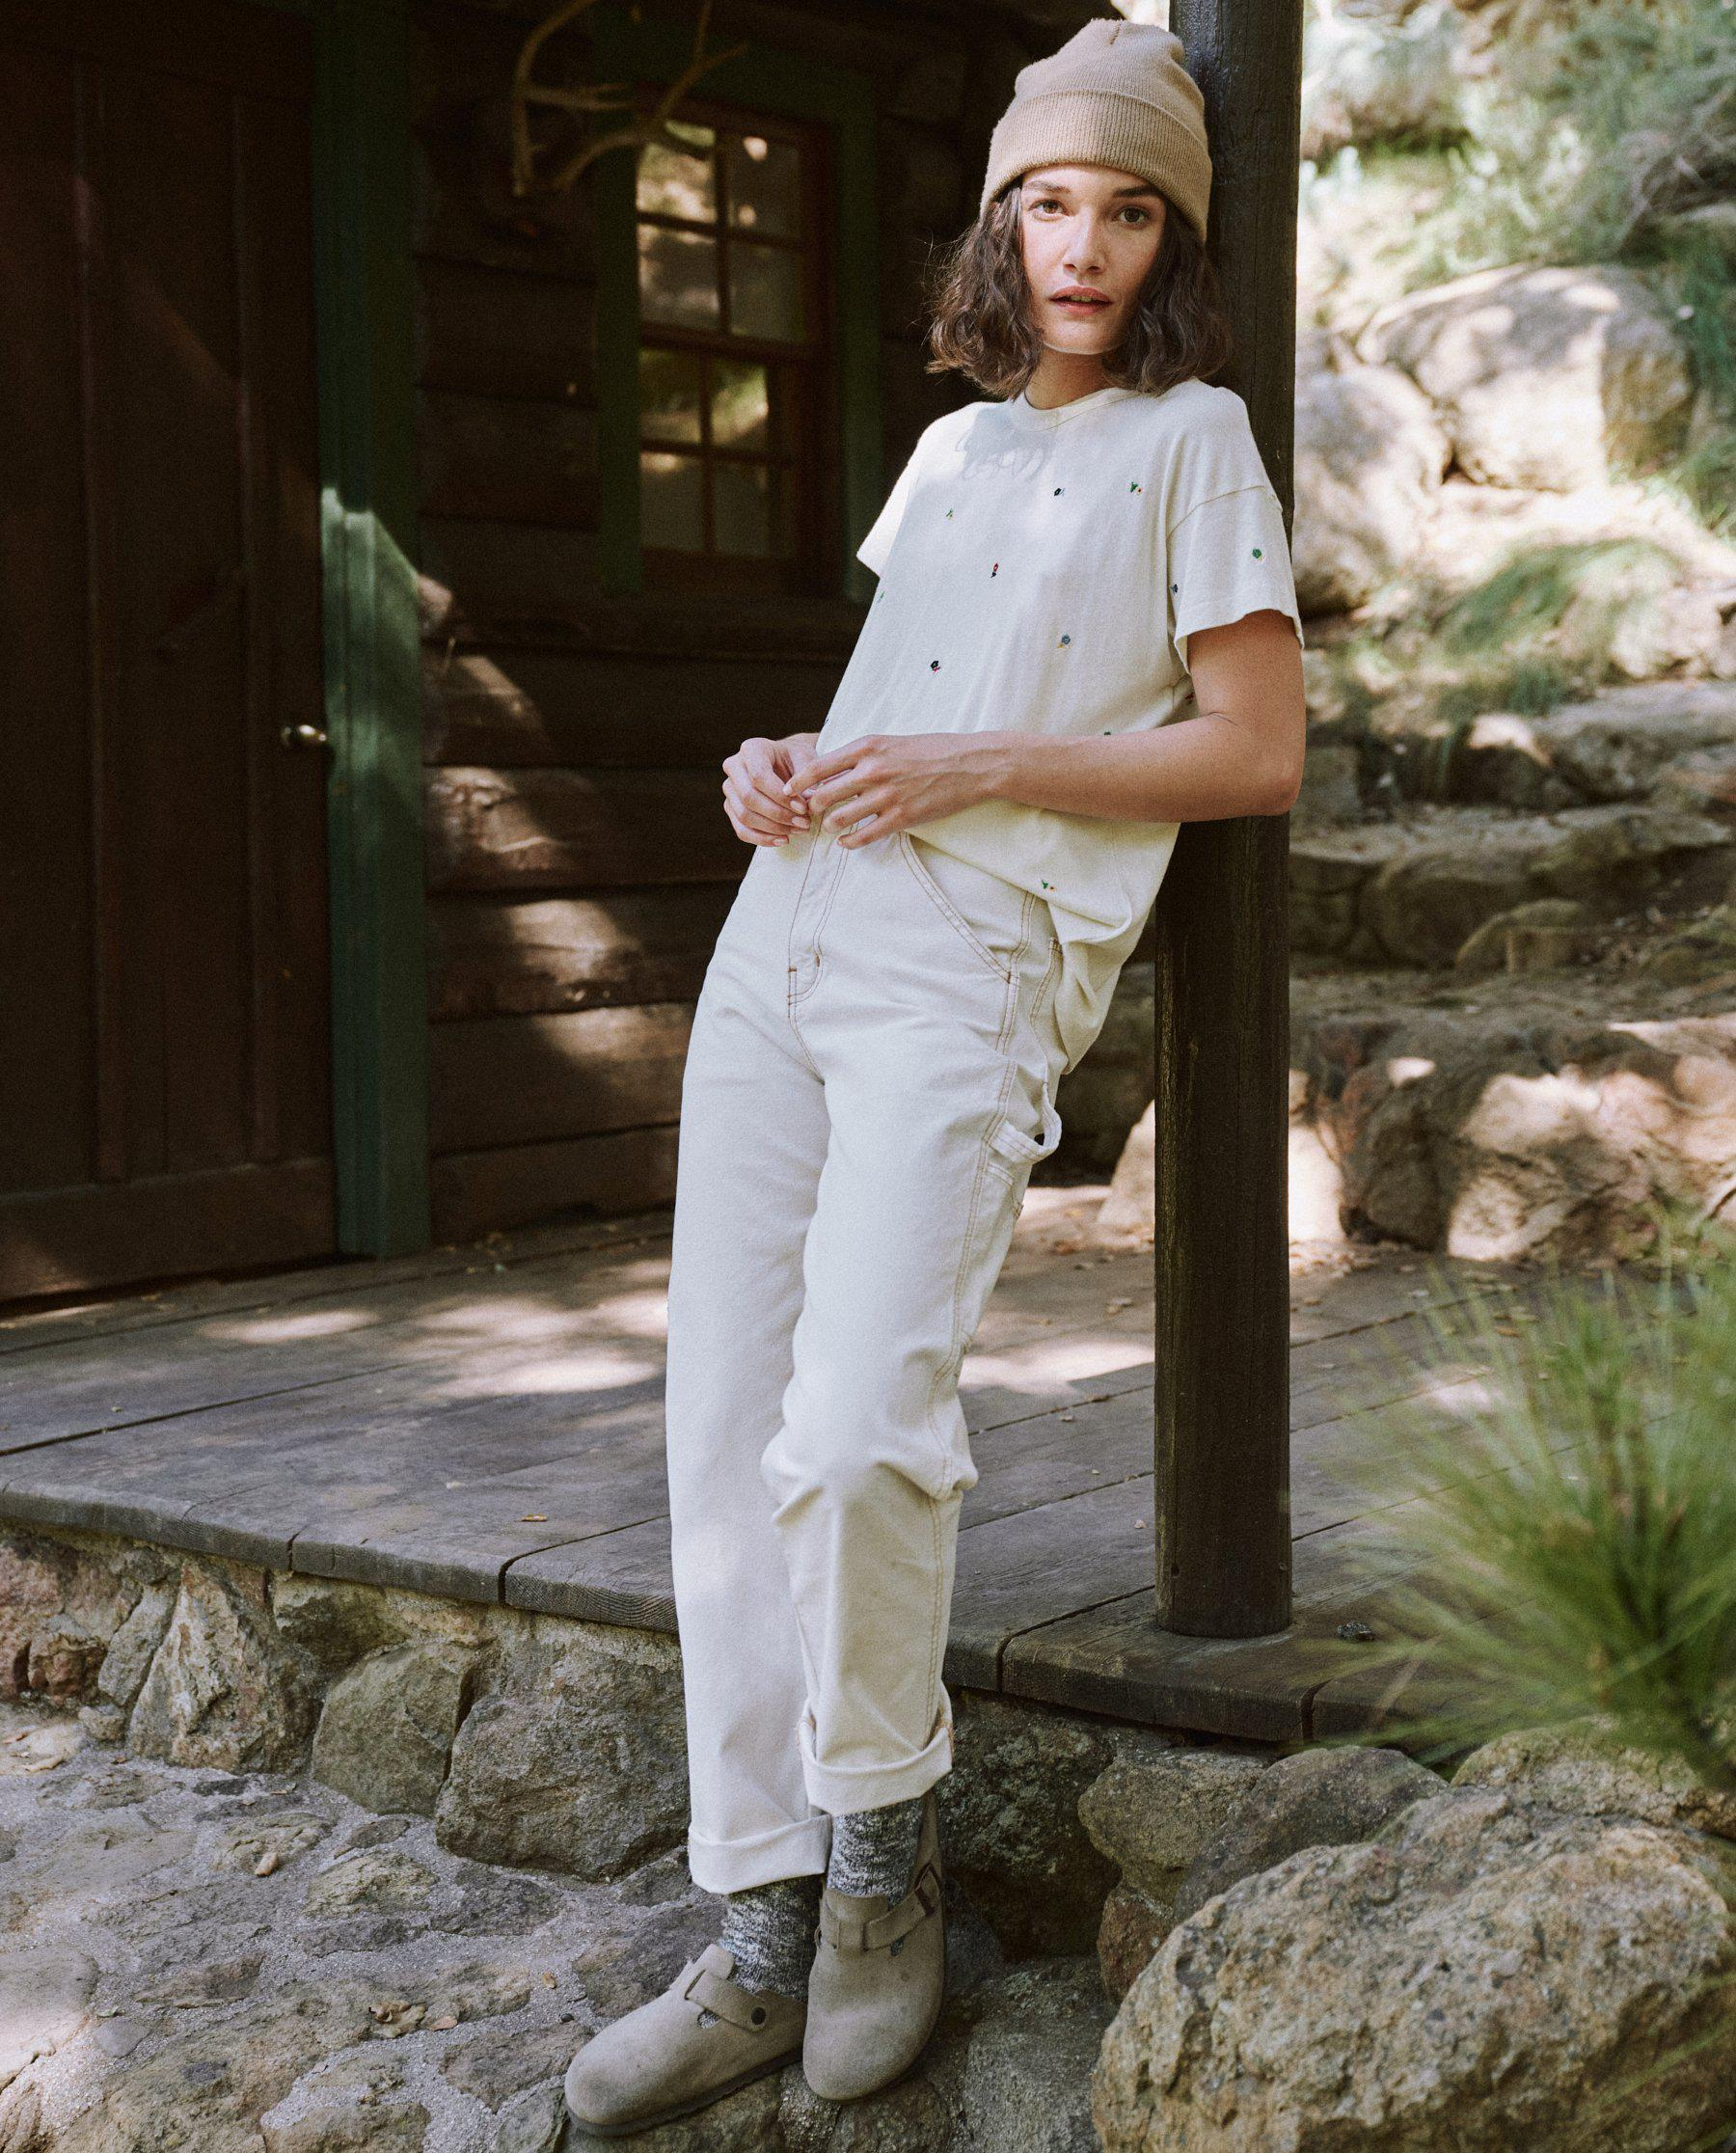 The Boxy Crew. Embroidered -- Washed White with Ditsy Floral Embroidery